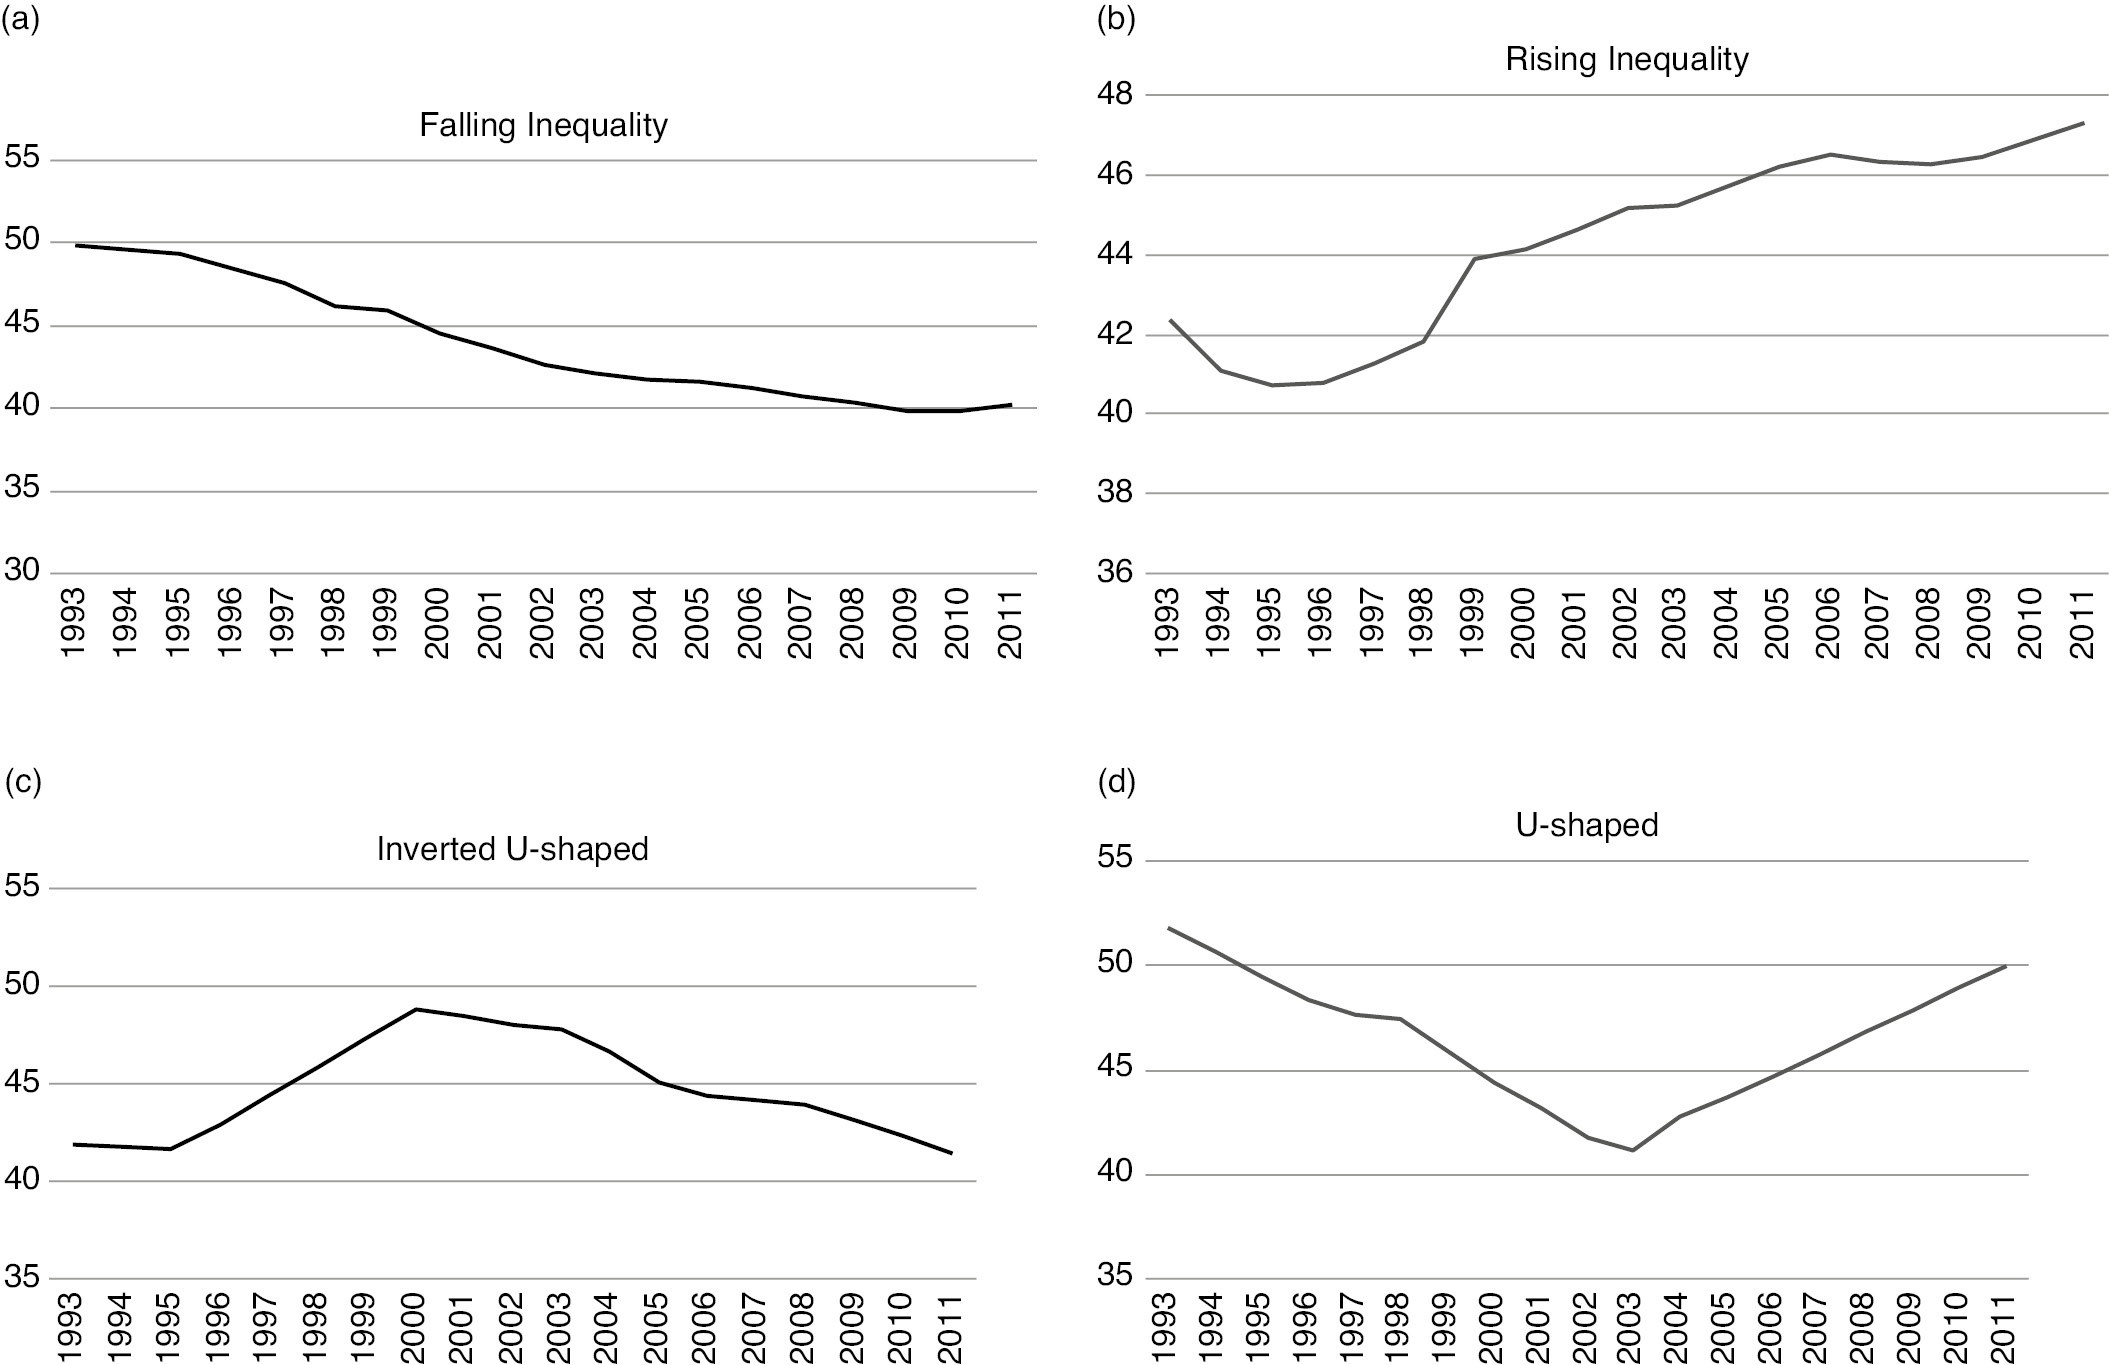 Economic Inequality and Social Progress* (Chapter 3